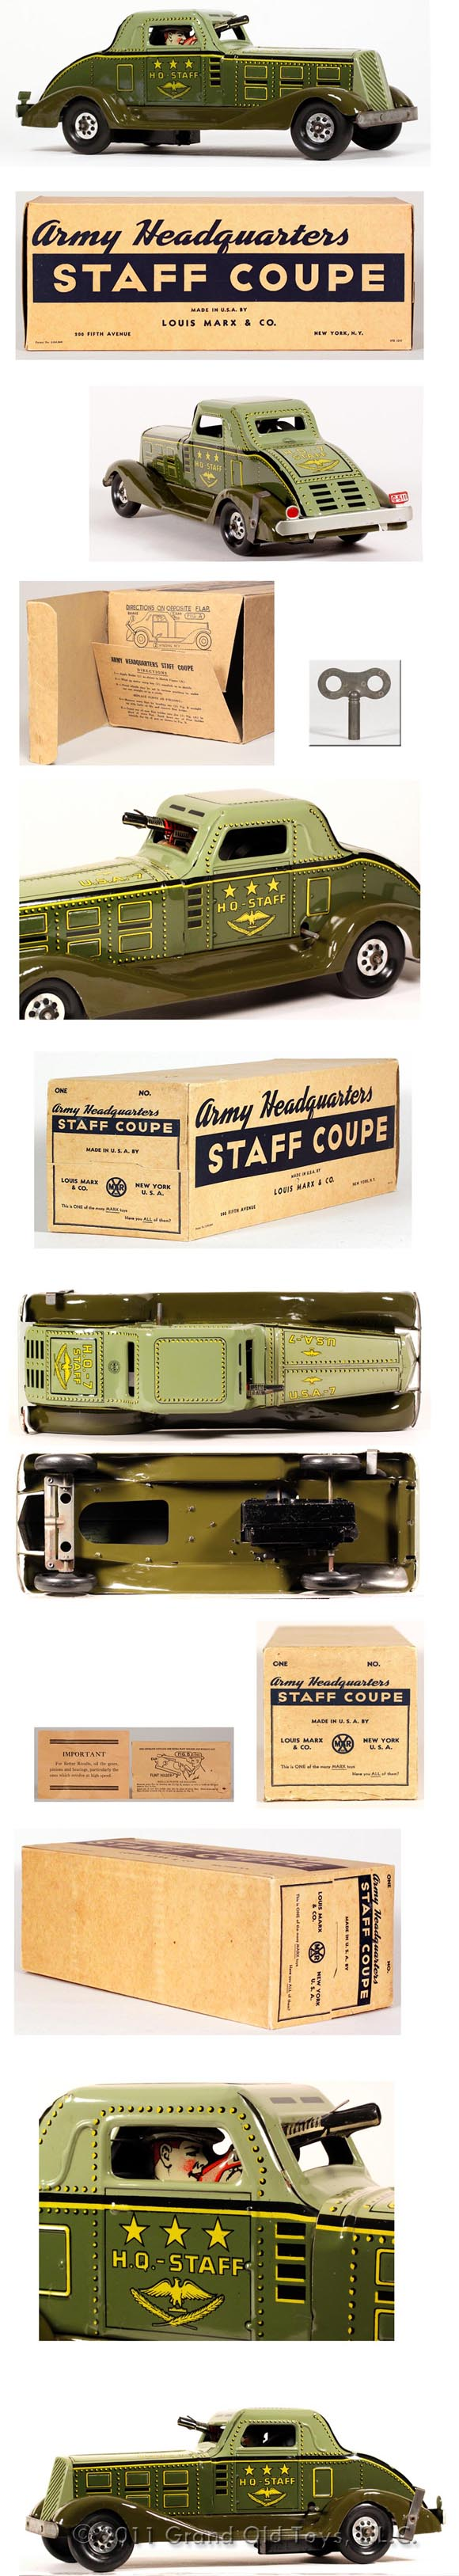 1939 Marx Army Headquarters Staff Coupe In Original Box